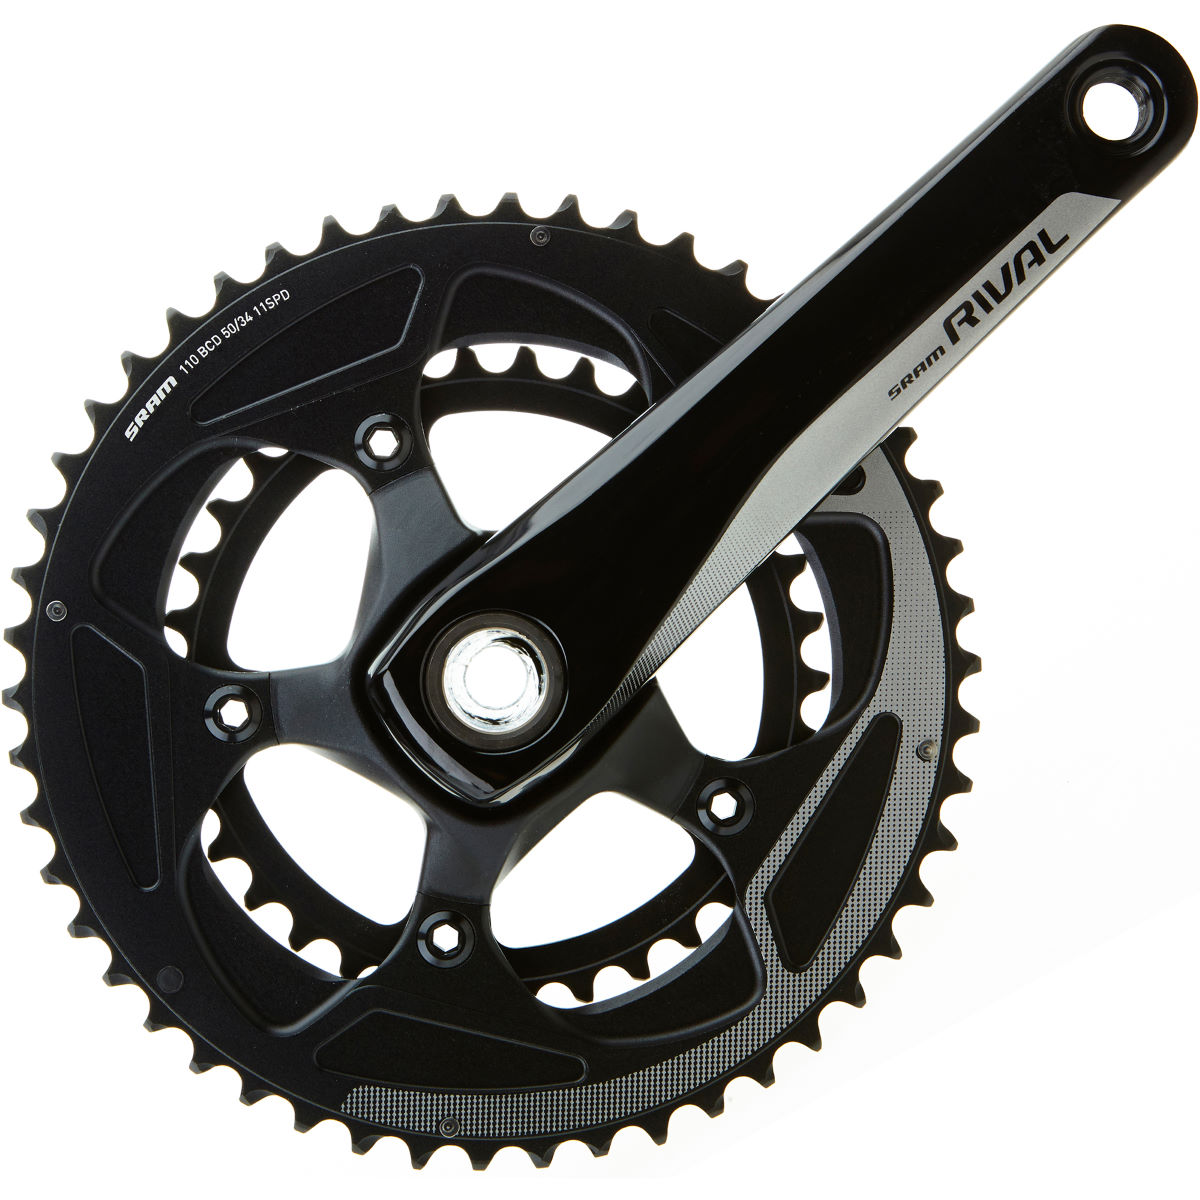 SRAM SRAM Rival 22 GXP Compact Chainset (11 Speed)   Chainsets